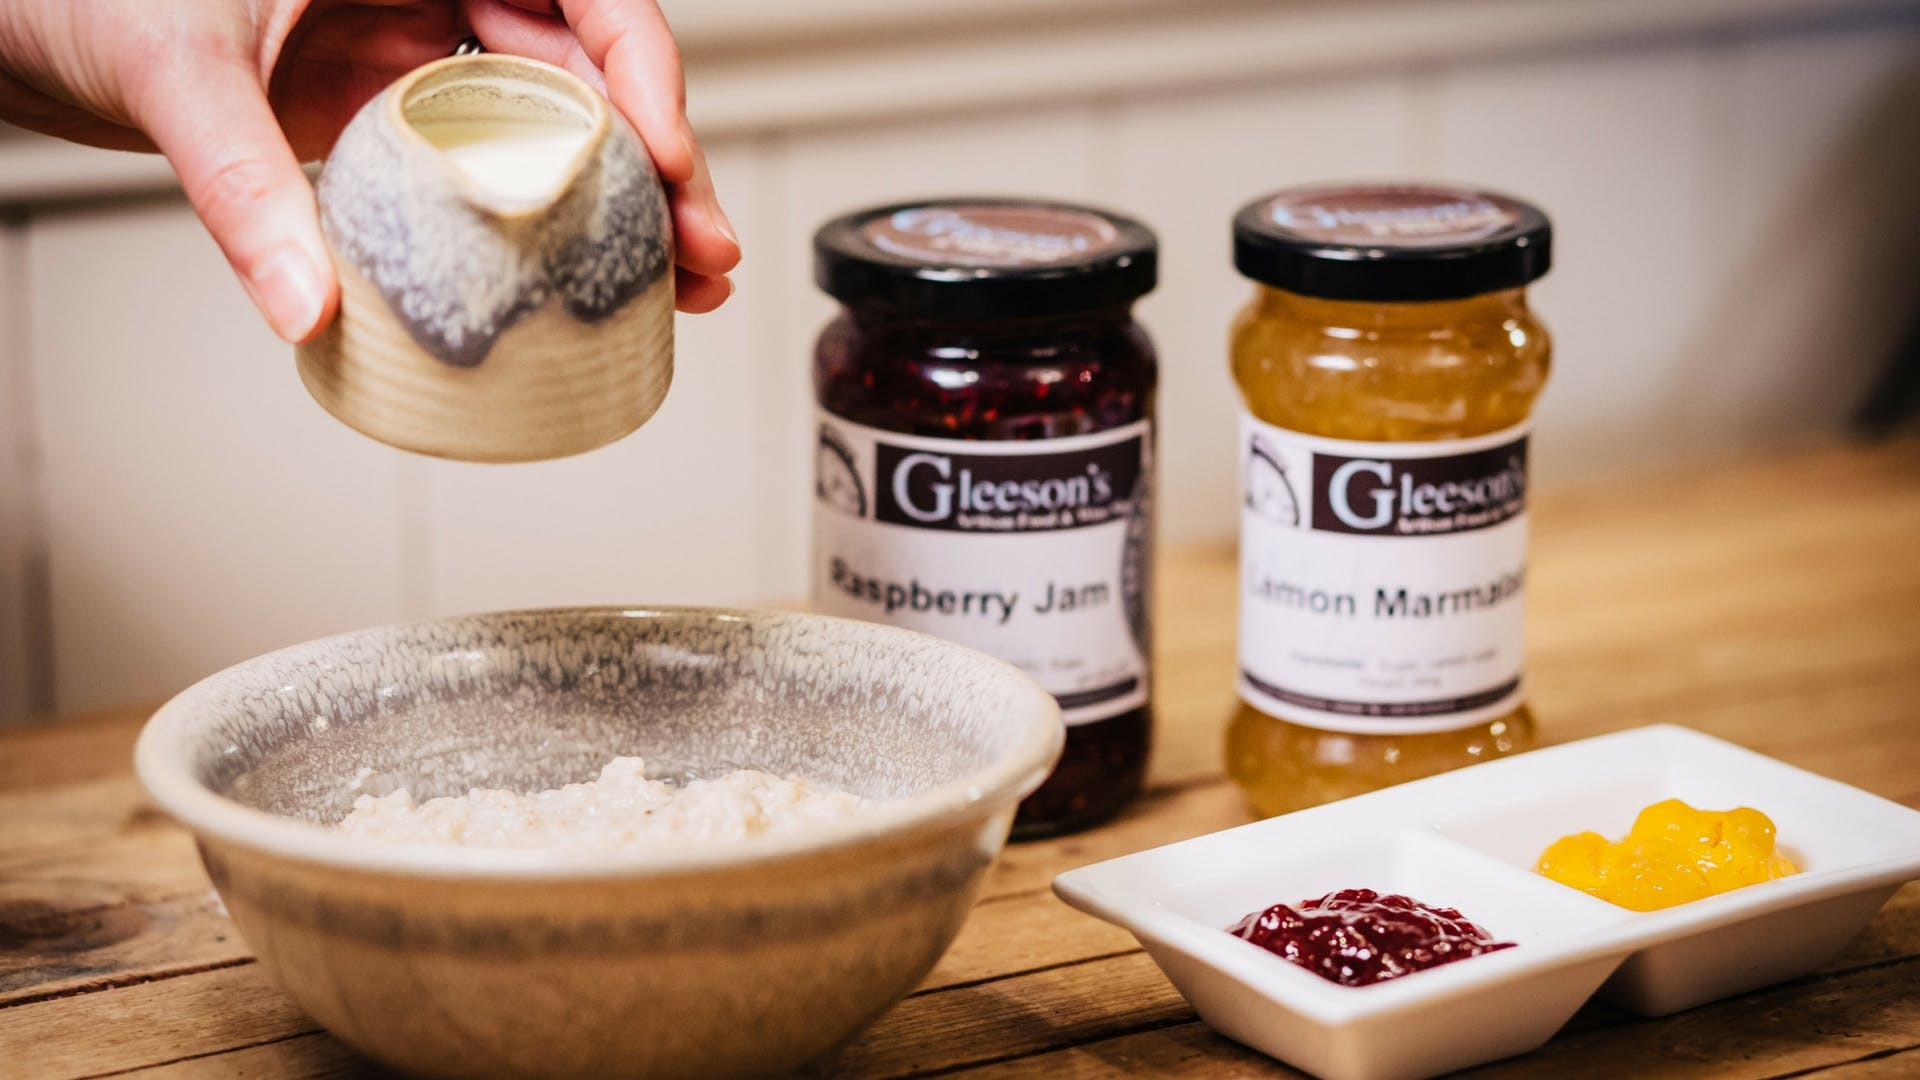 Porridge and homemade preserves at Gleesons Restaurant & Rooms, Roscommon